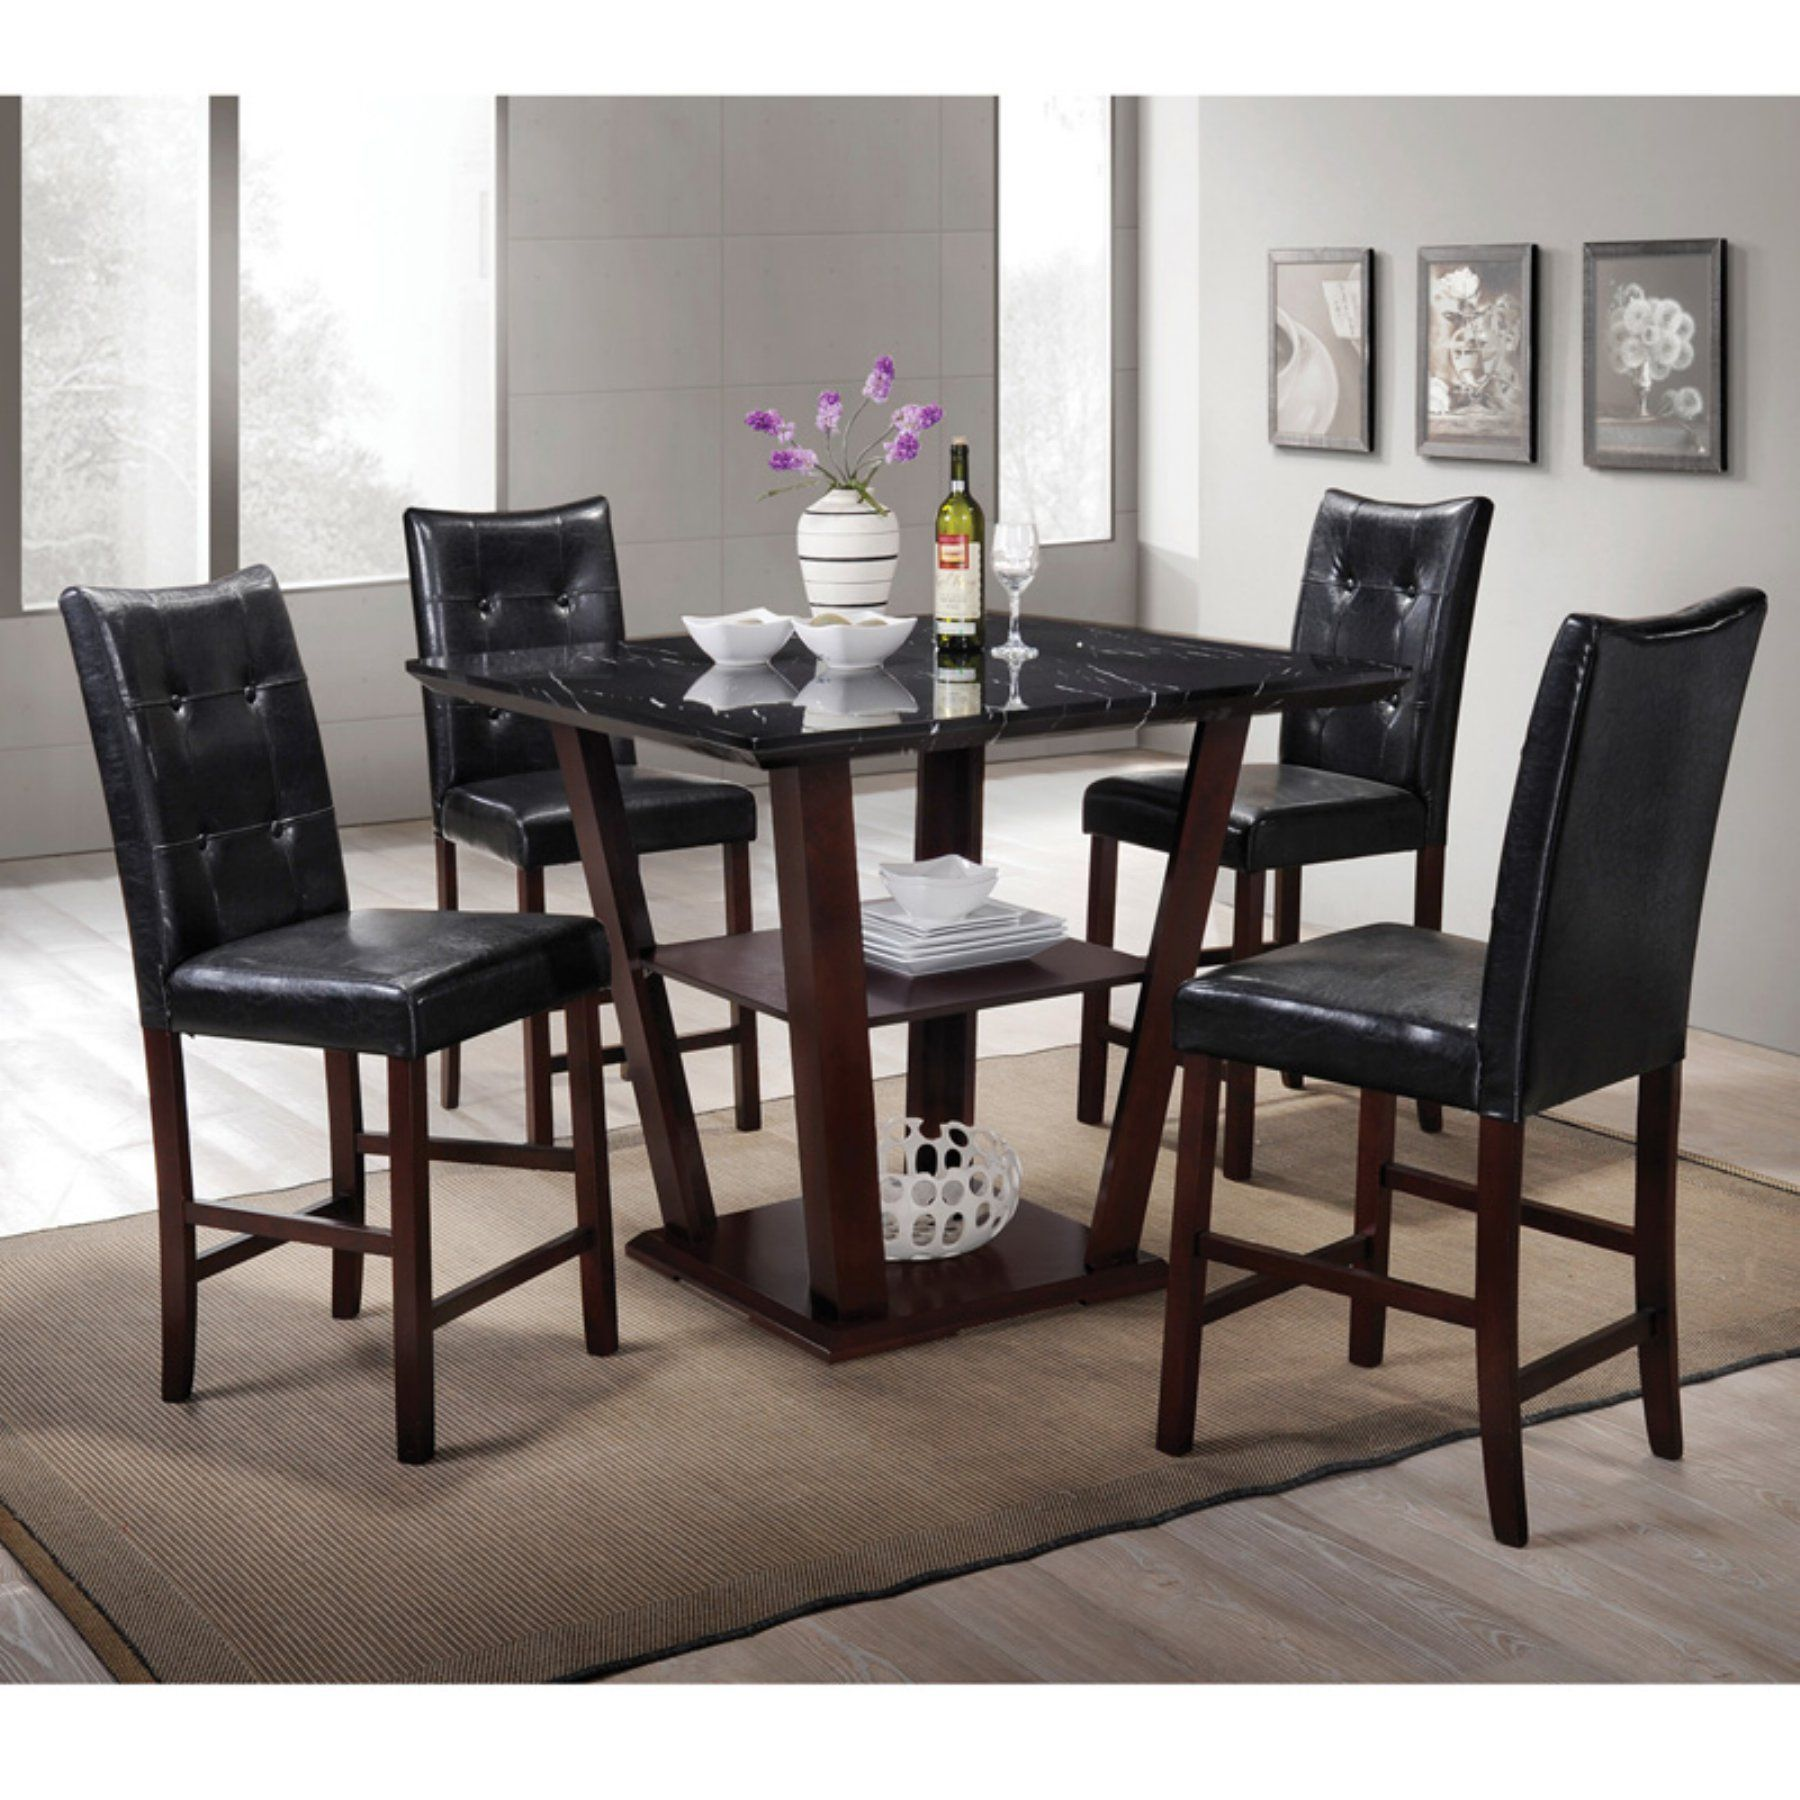 Home Source Industries 5 Piece Faux Marble Counter Height Dining